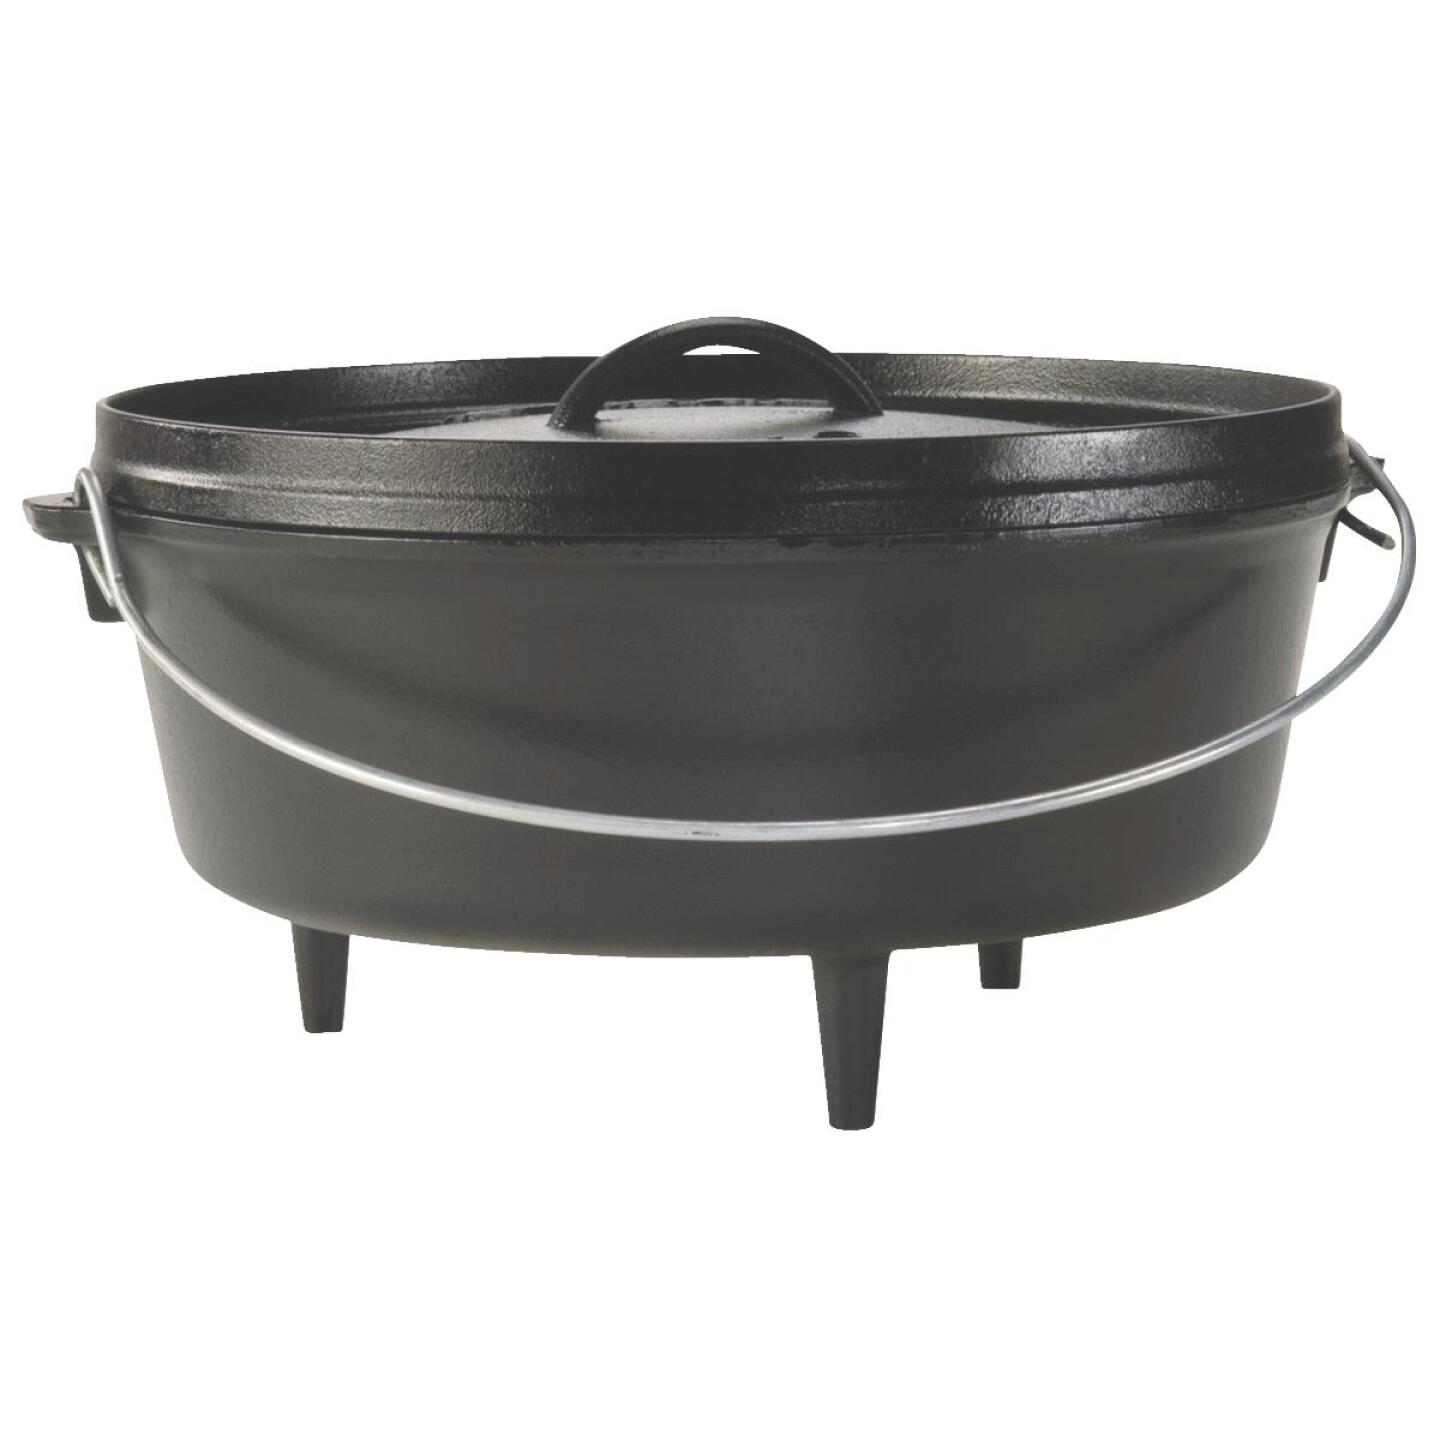 Lodge 6 Qt. Cast Iron Dutch Oven Image 1